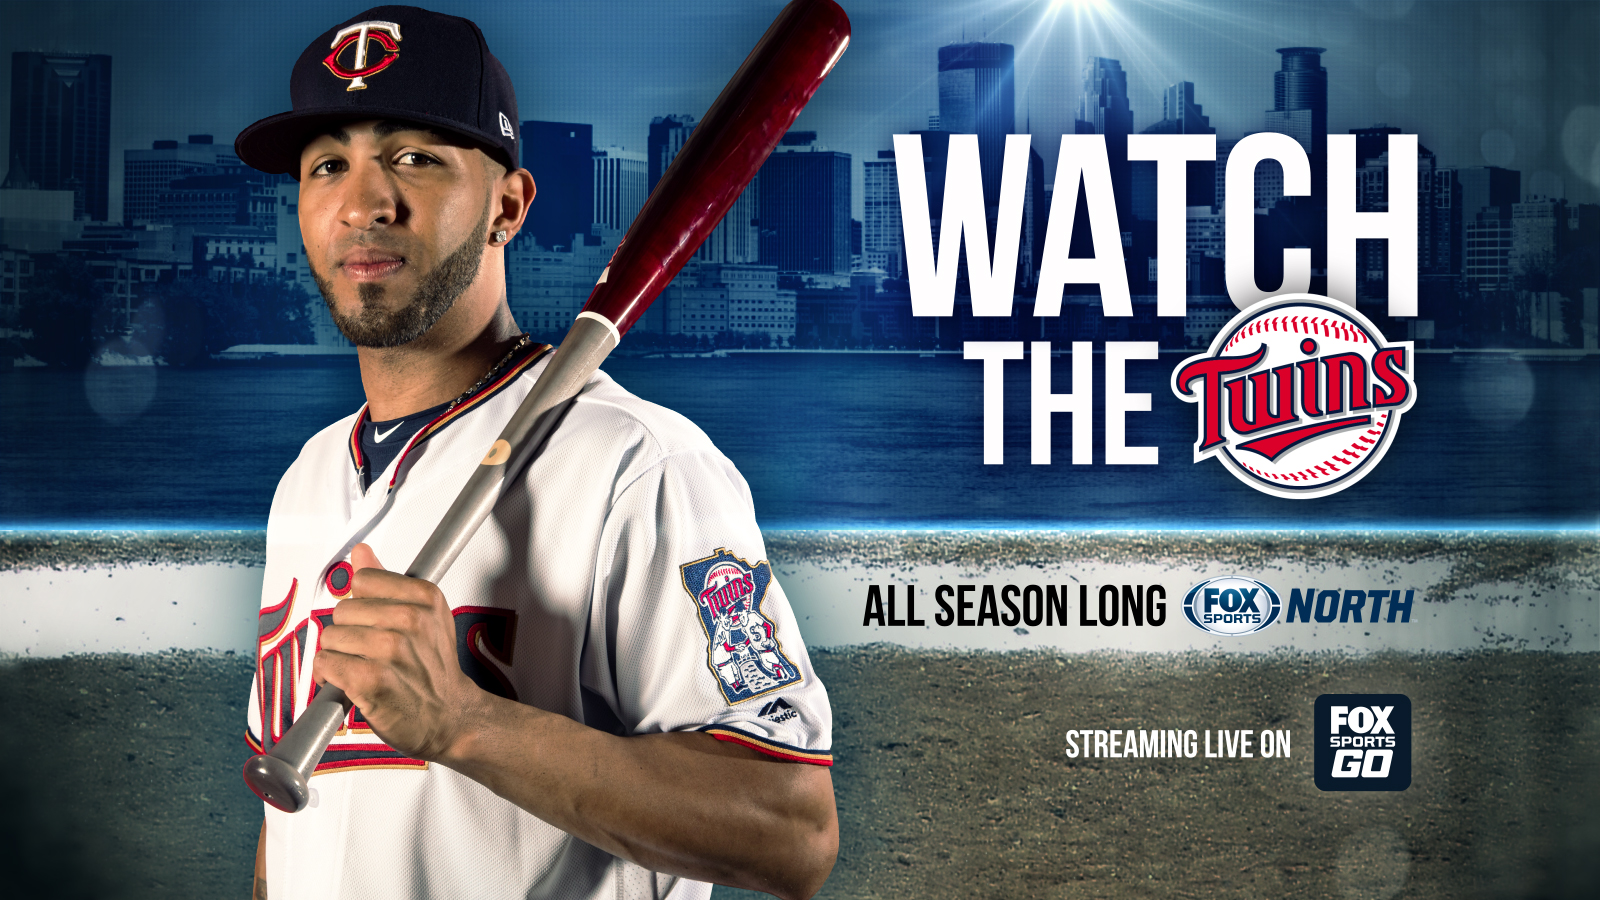 Stream Twins games on your mobile device with FOX Sports Go